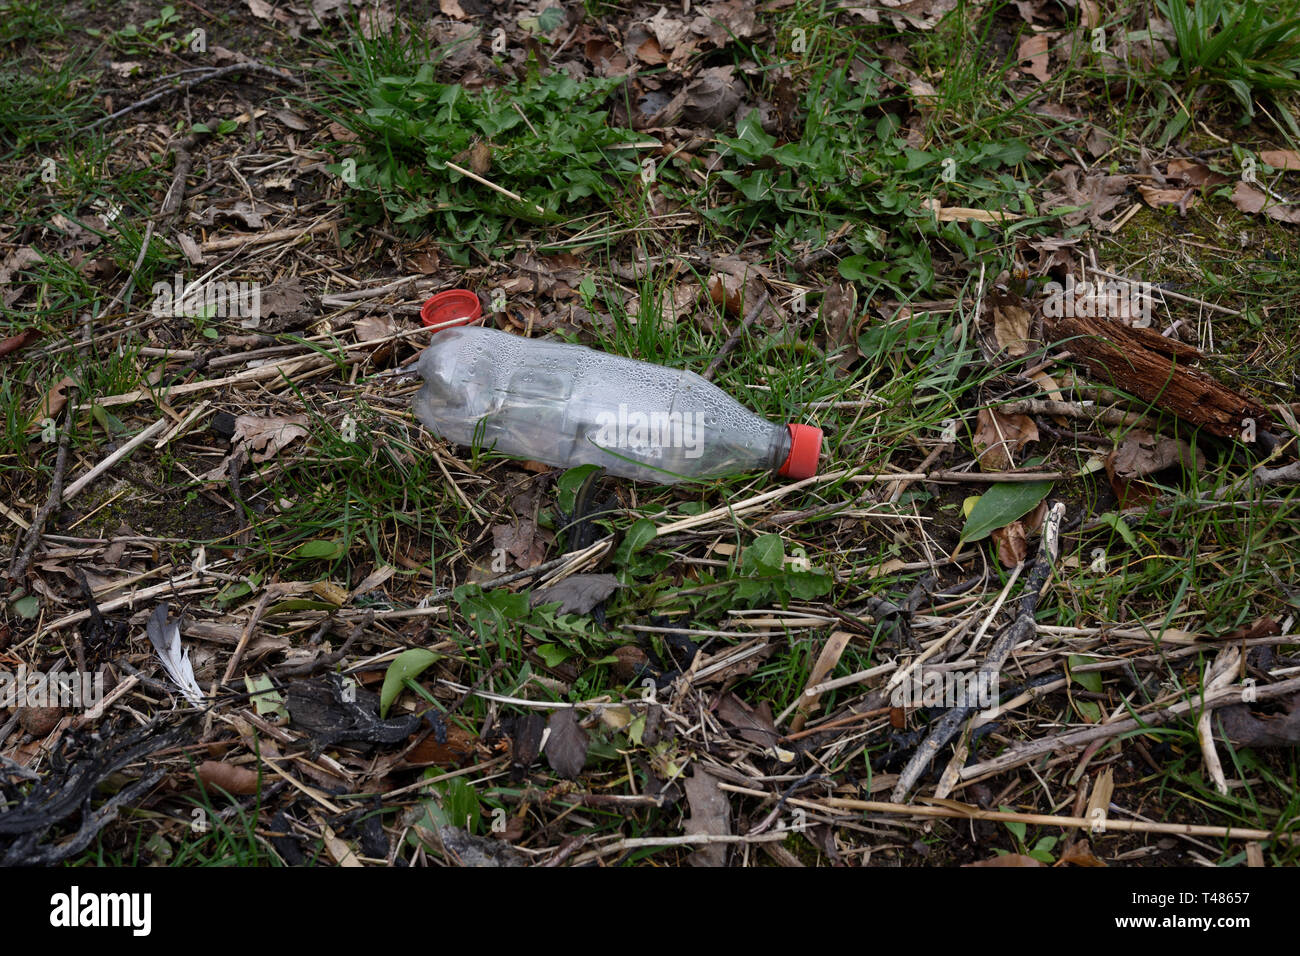 Clear plastic bottle with red top thrown away in North wales uk Stock Photo